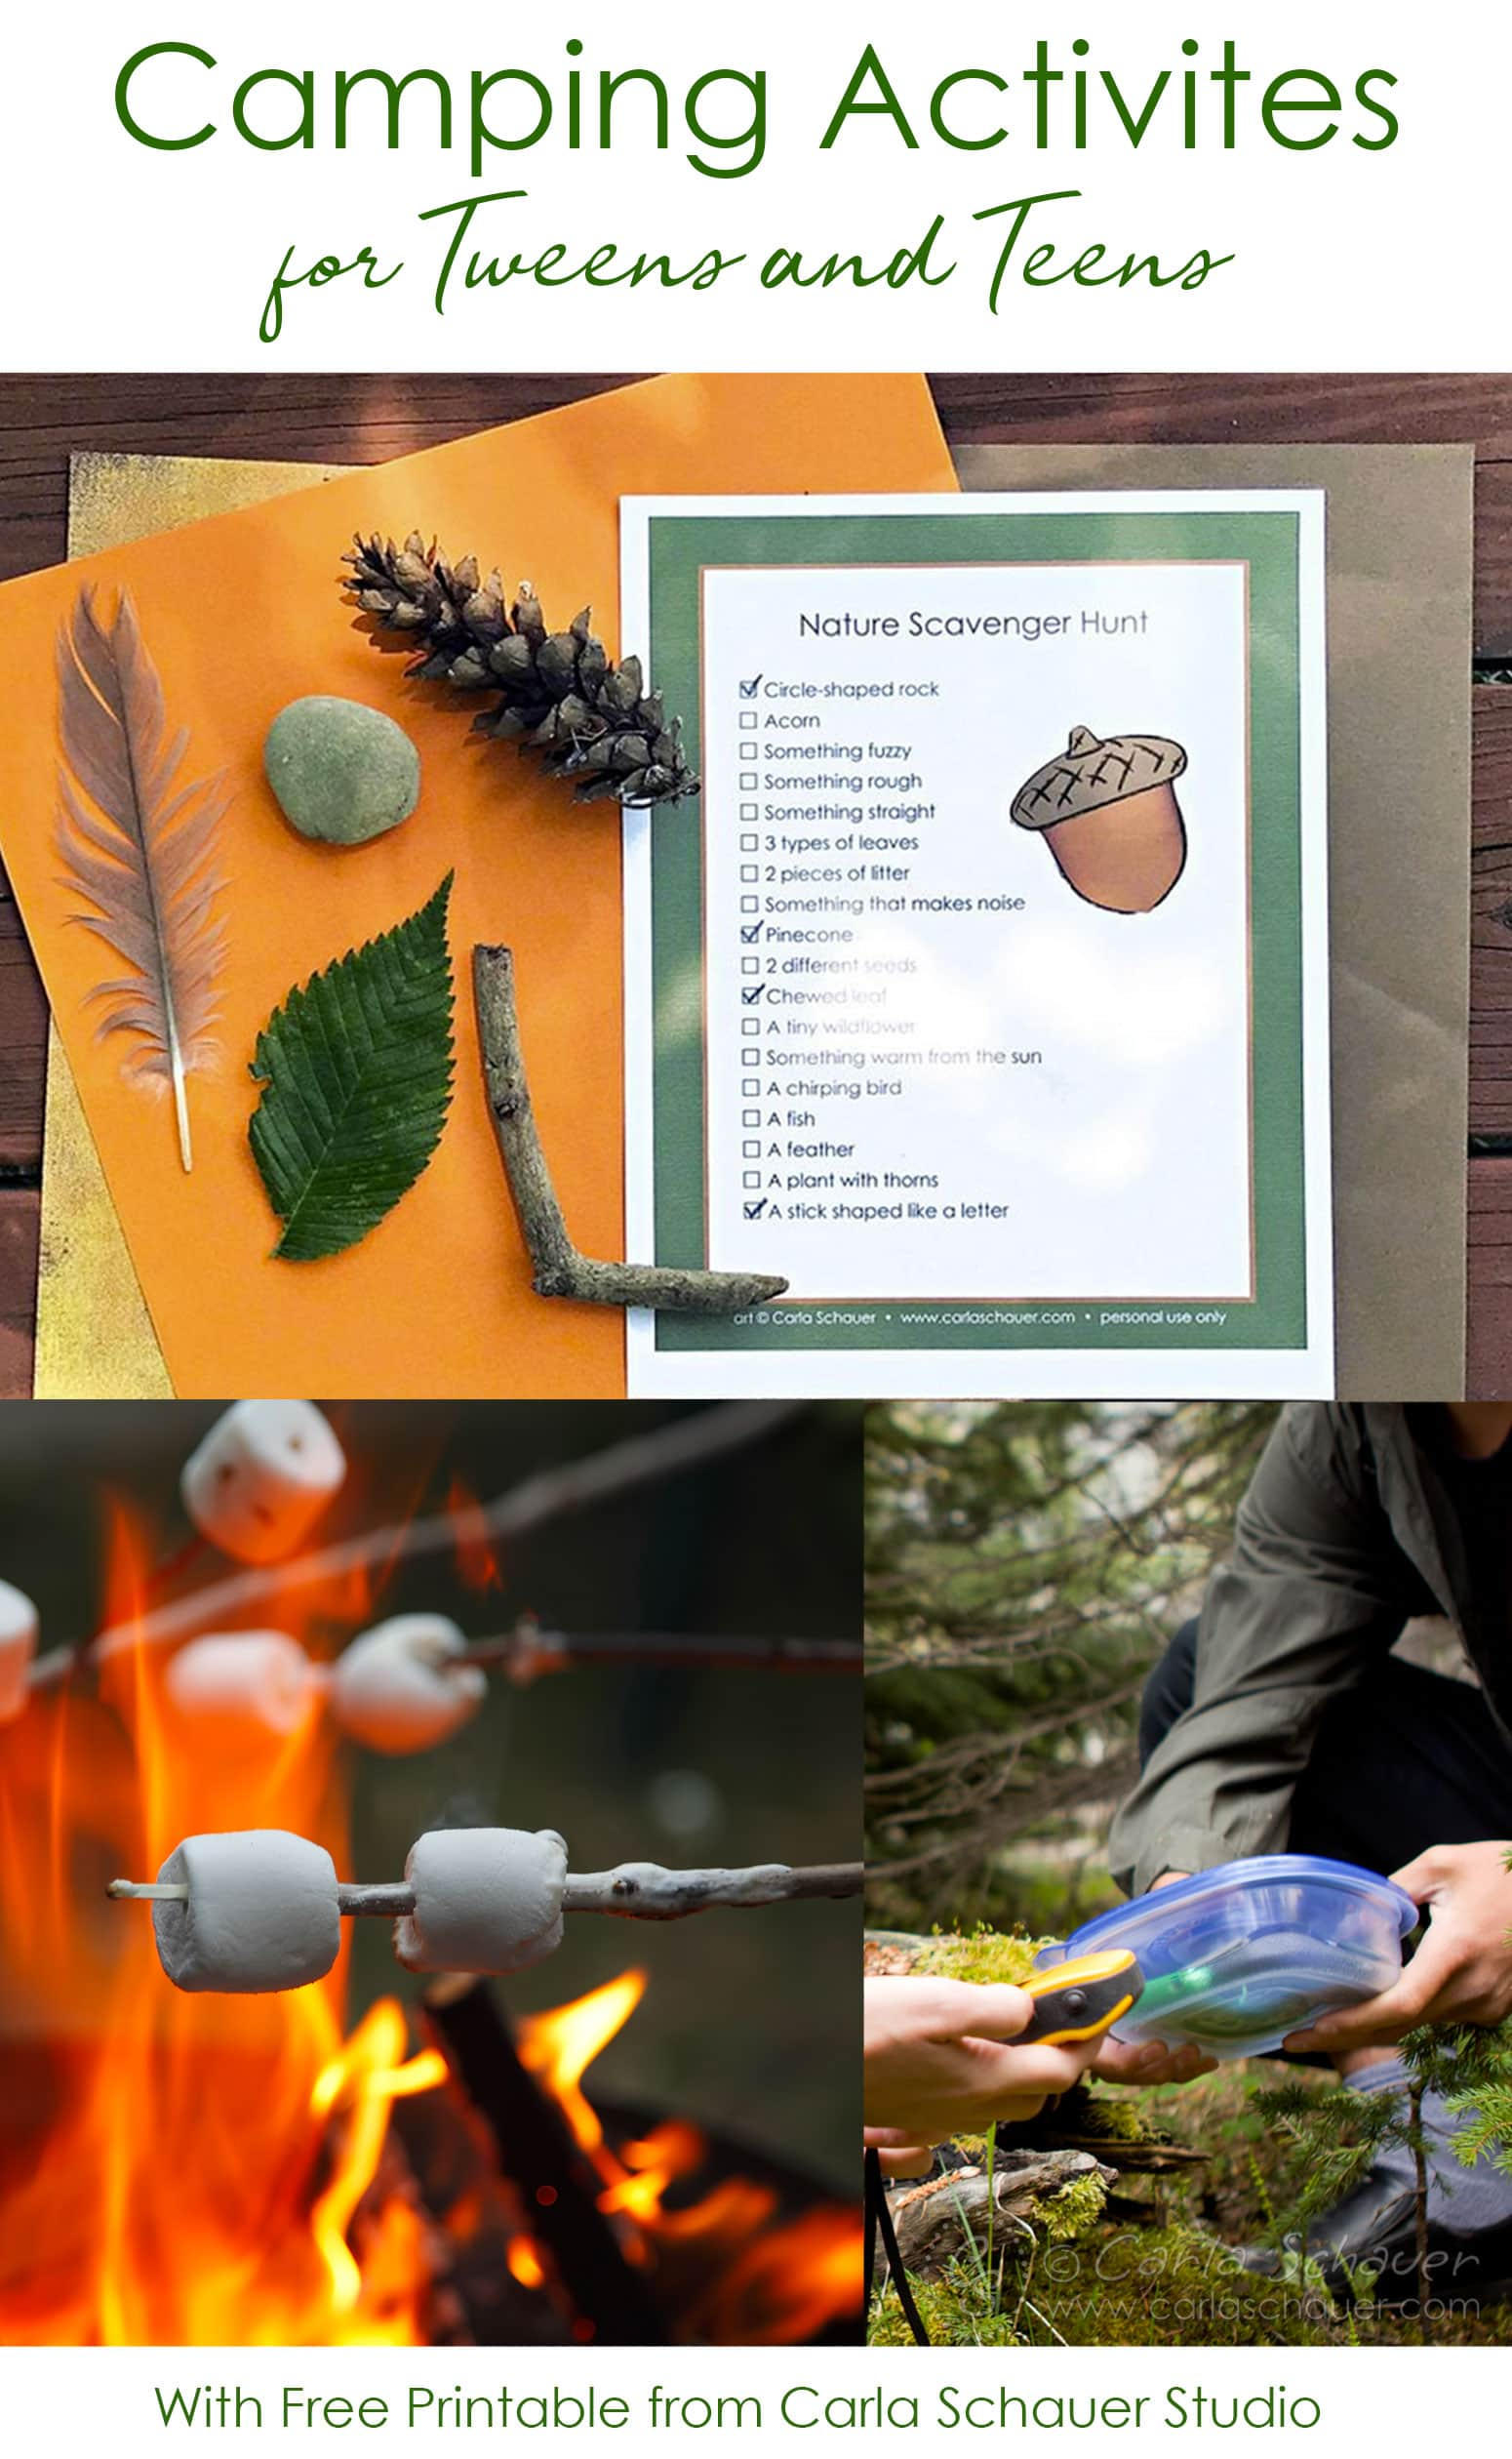 3 tween camping activity images in collage with text for pinning.